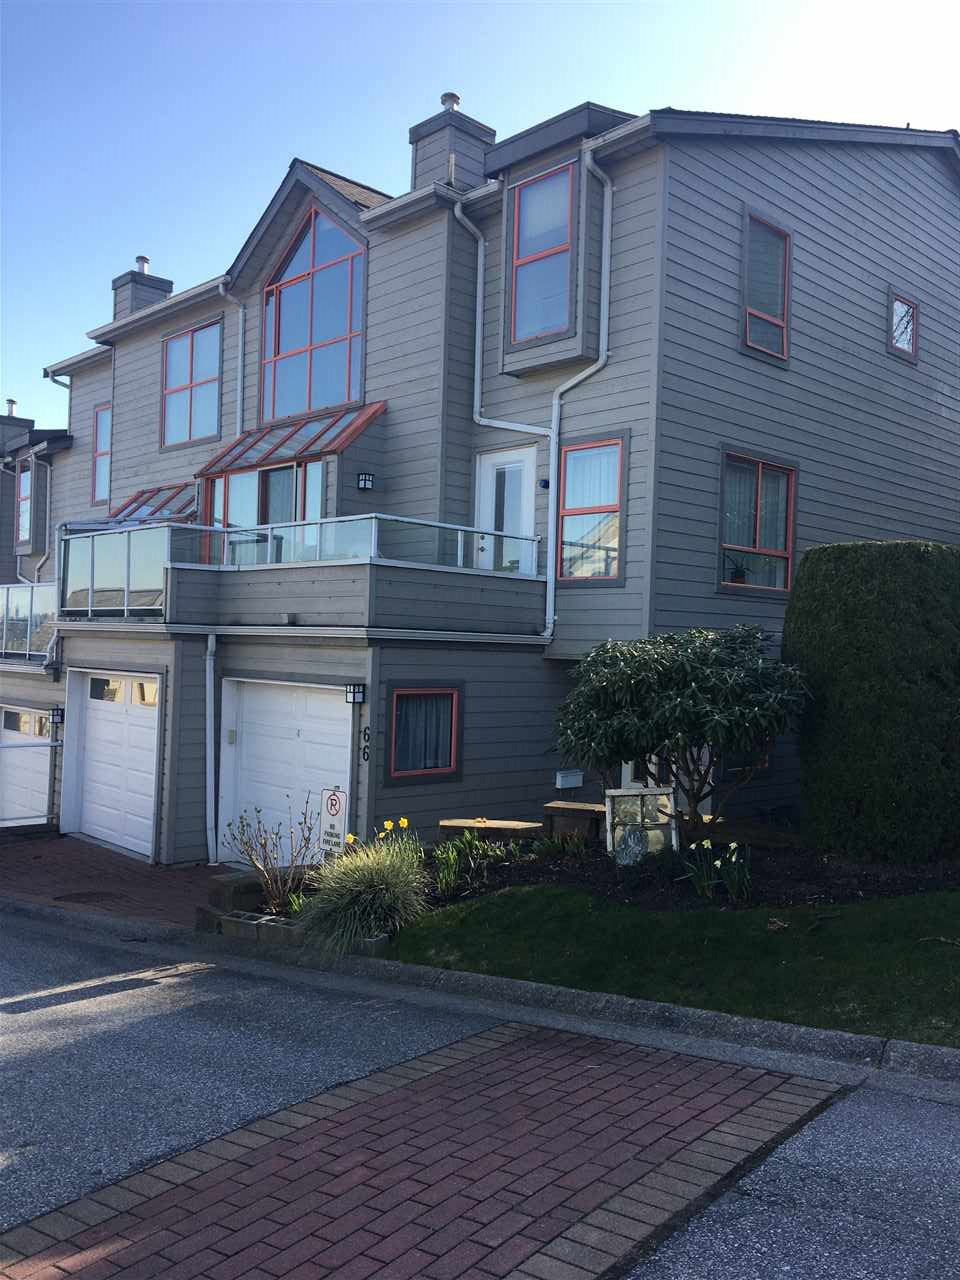 66 323 GOVERNORS COURT - MLS® # R2446273